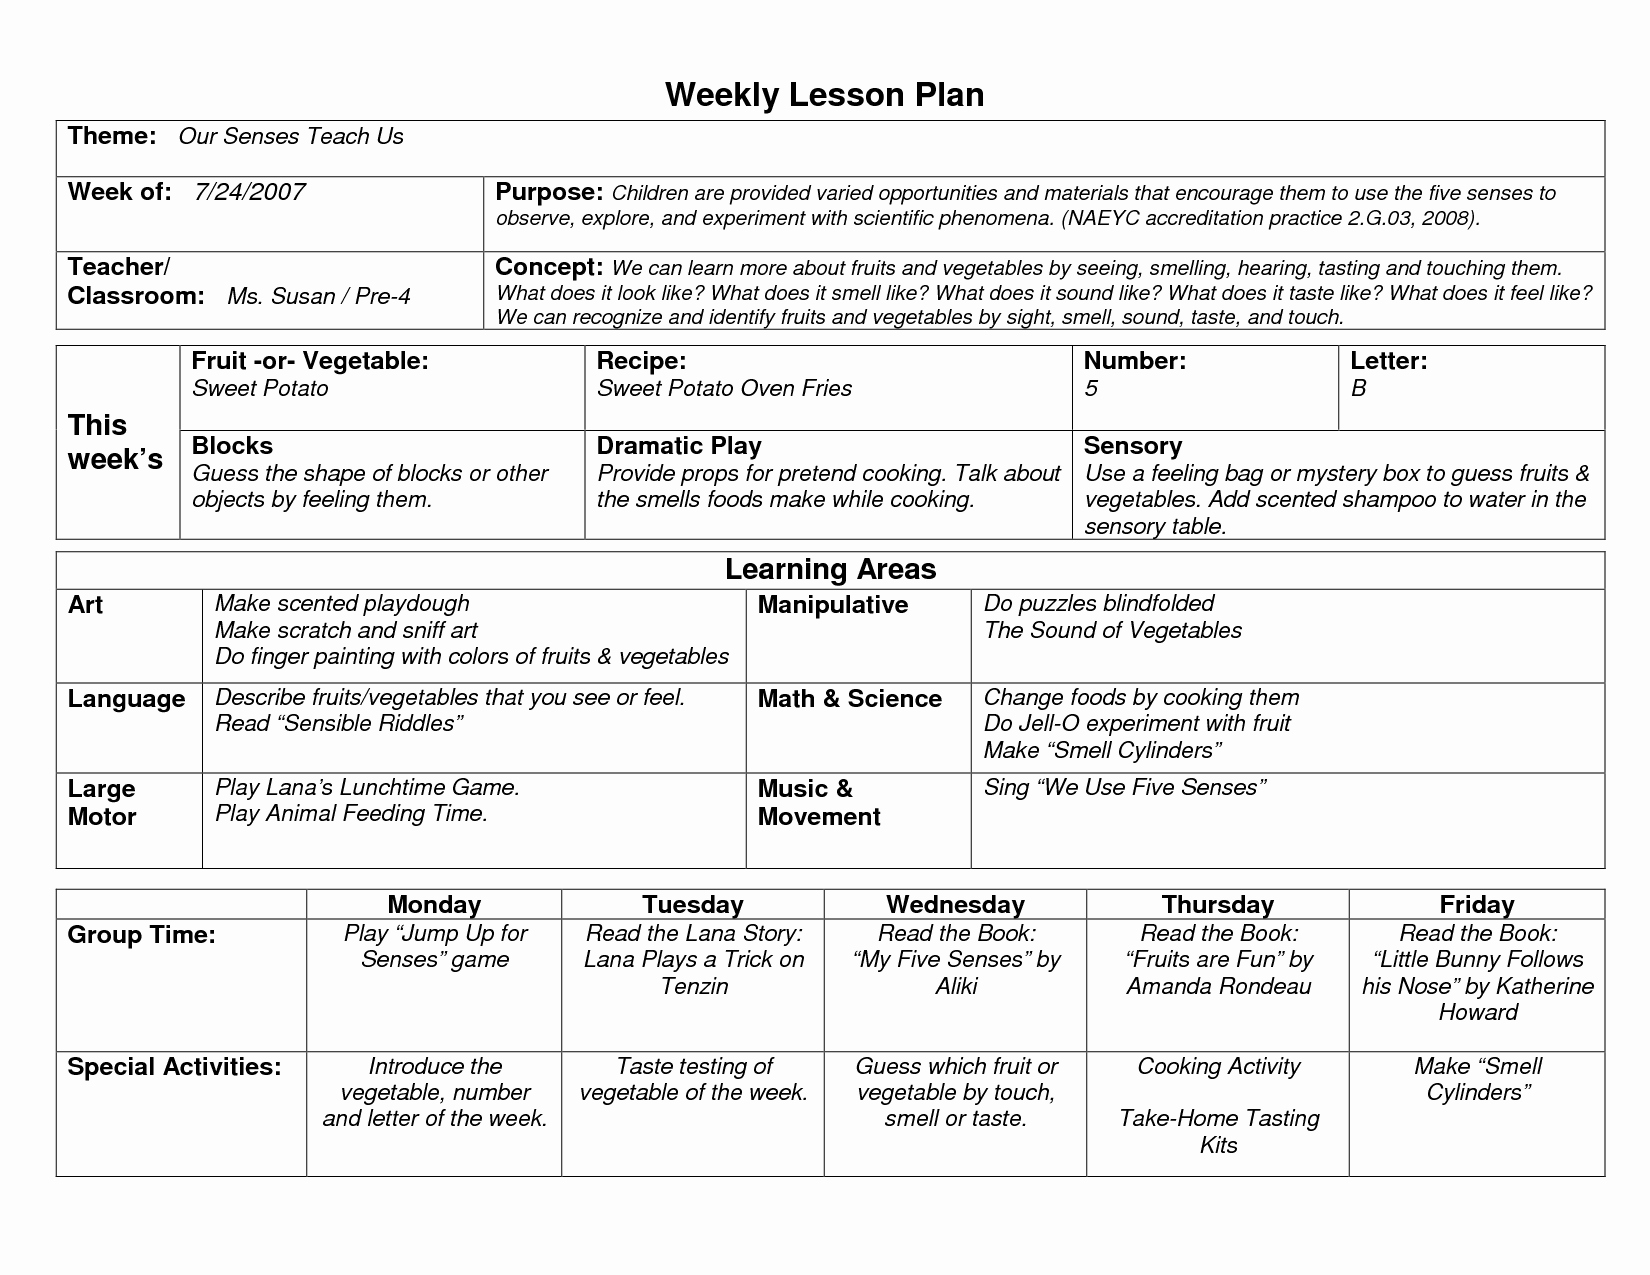 Weekly Lesson Plan Template Elegant Naeyc Lesson Plan Template for Preschool